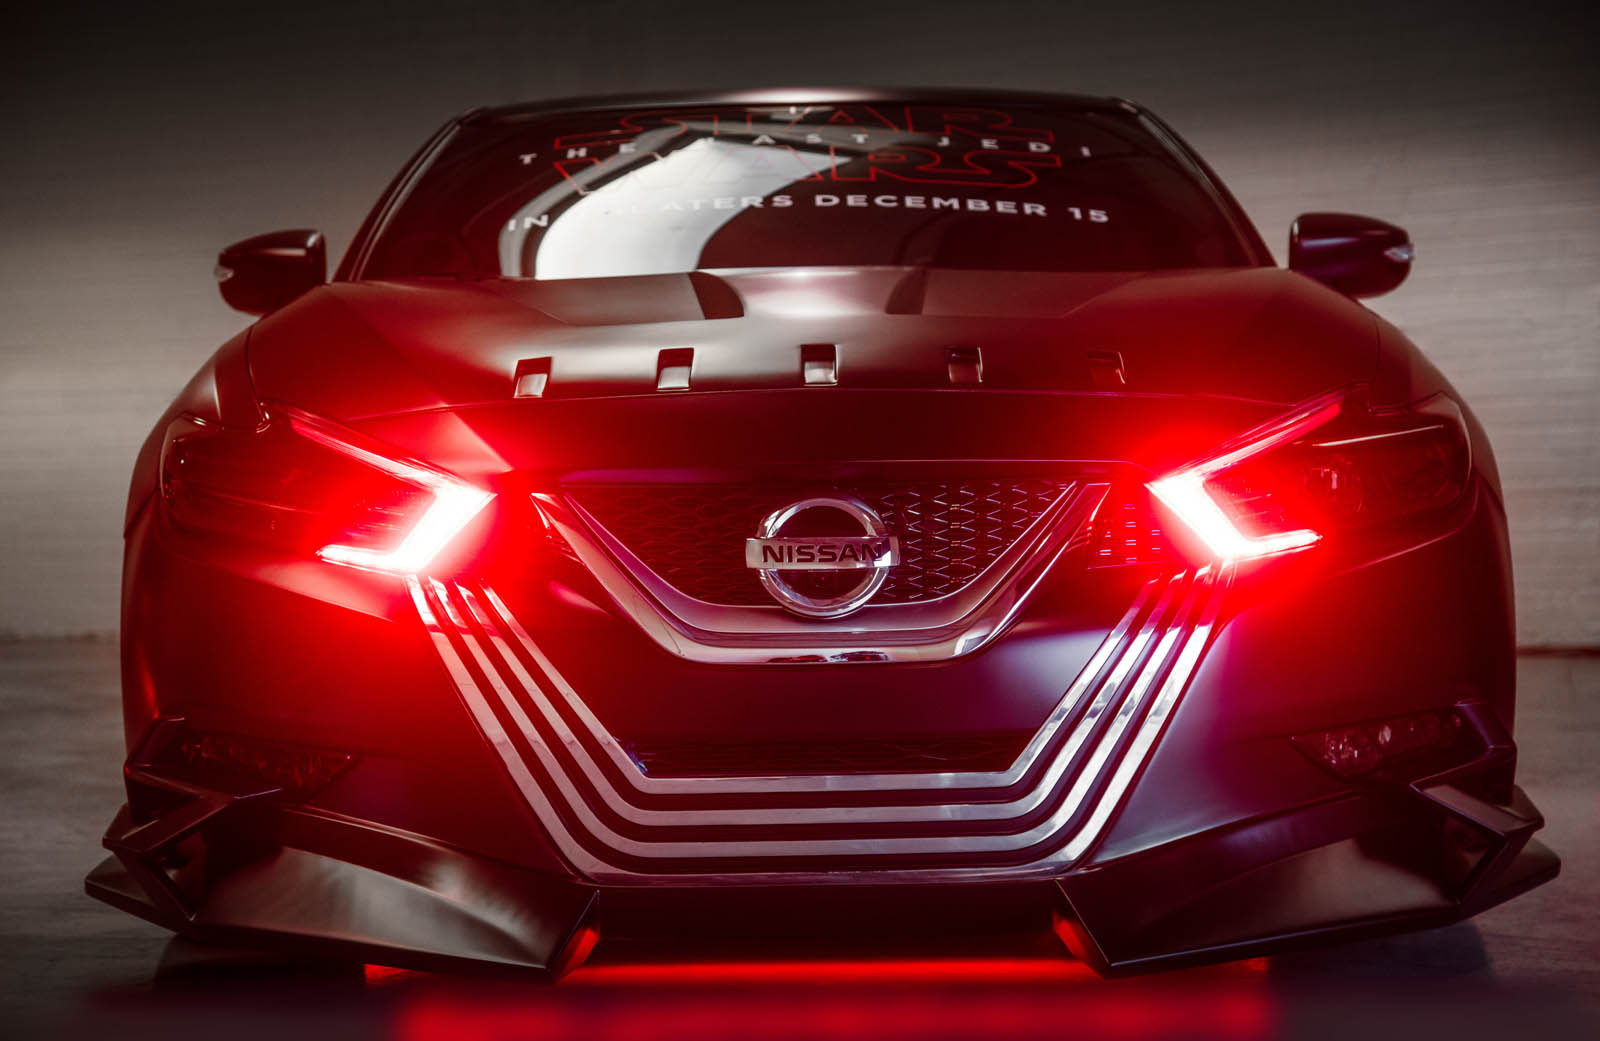 Designers merged Kylo Ren's unmistakable black and silver facemask with the Maxima's V-motion design language using a single block of milled aluminum for the front of the 4-Door Sports Car.